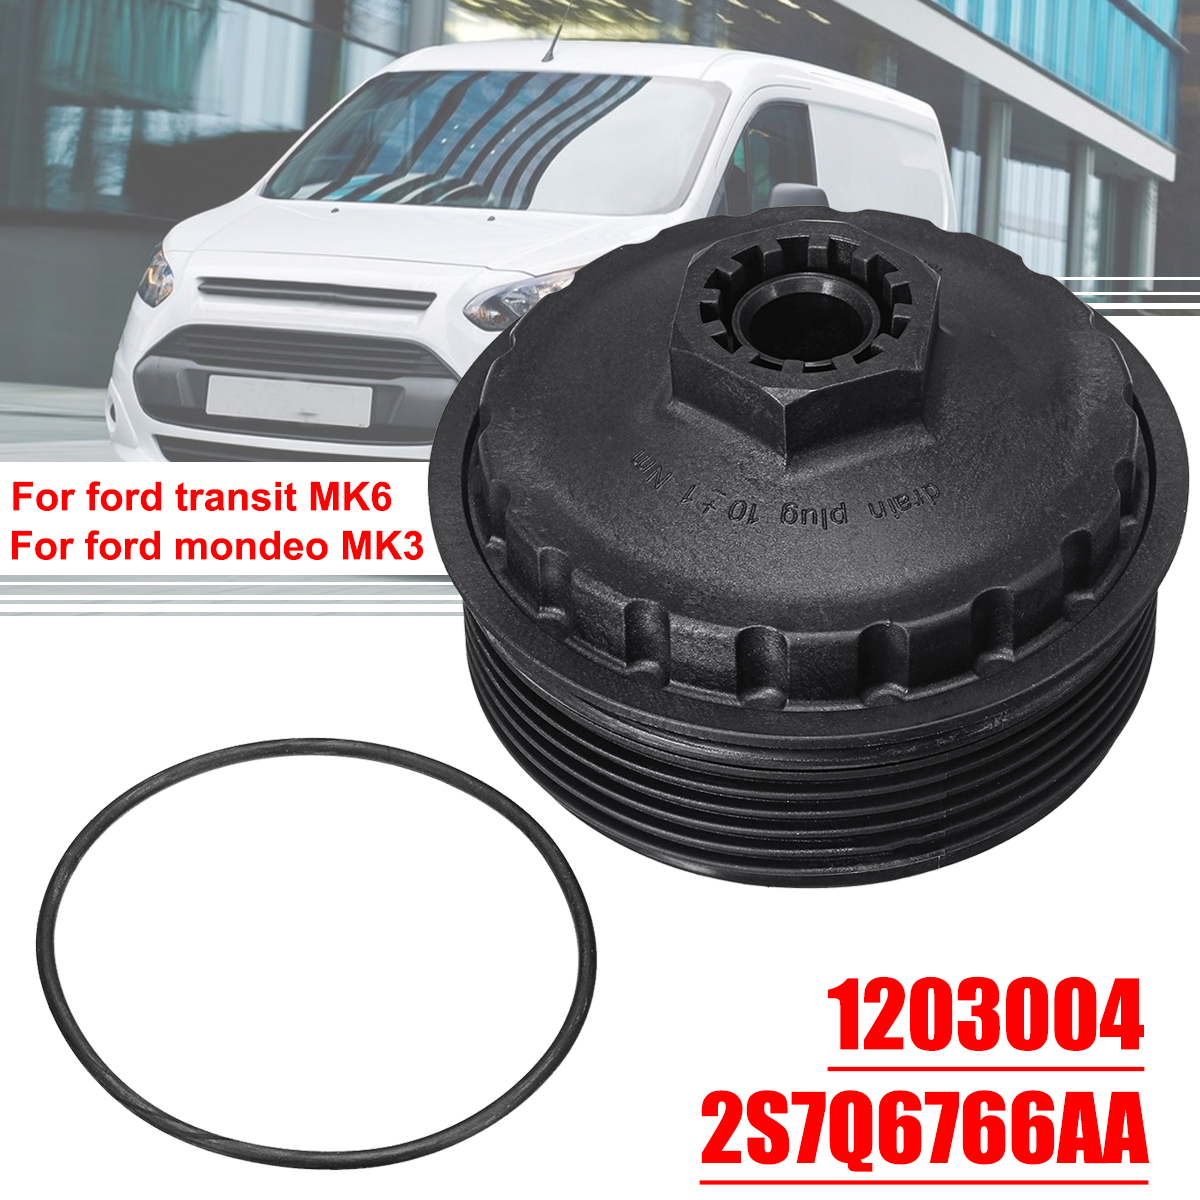 Hot Sale 2s7q6766aa Car Oil Filter Cover Cap Bowl Fuel Delivery Jaguar Housing For Ford Transit Mk6 Mondeo Mk3 X Type 2000 2007